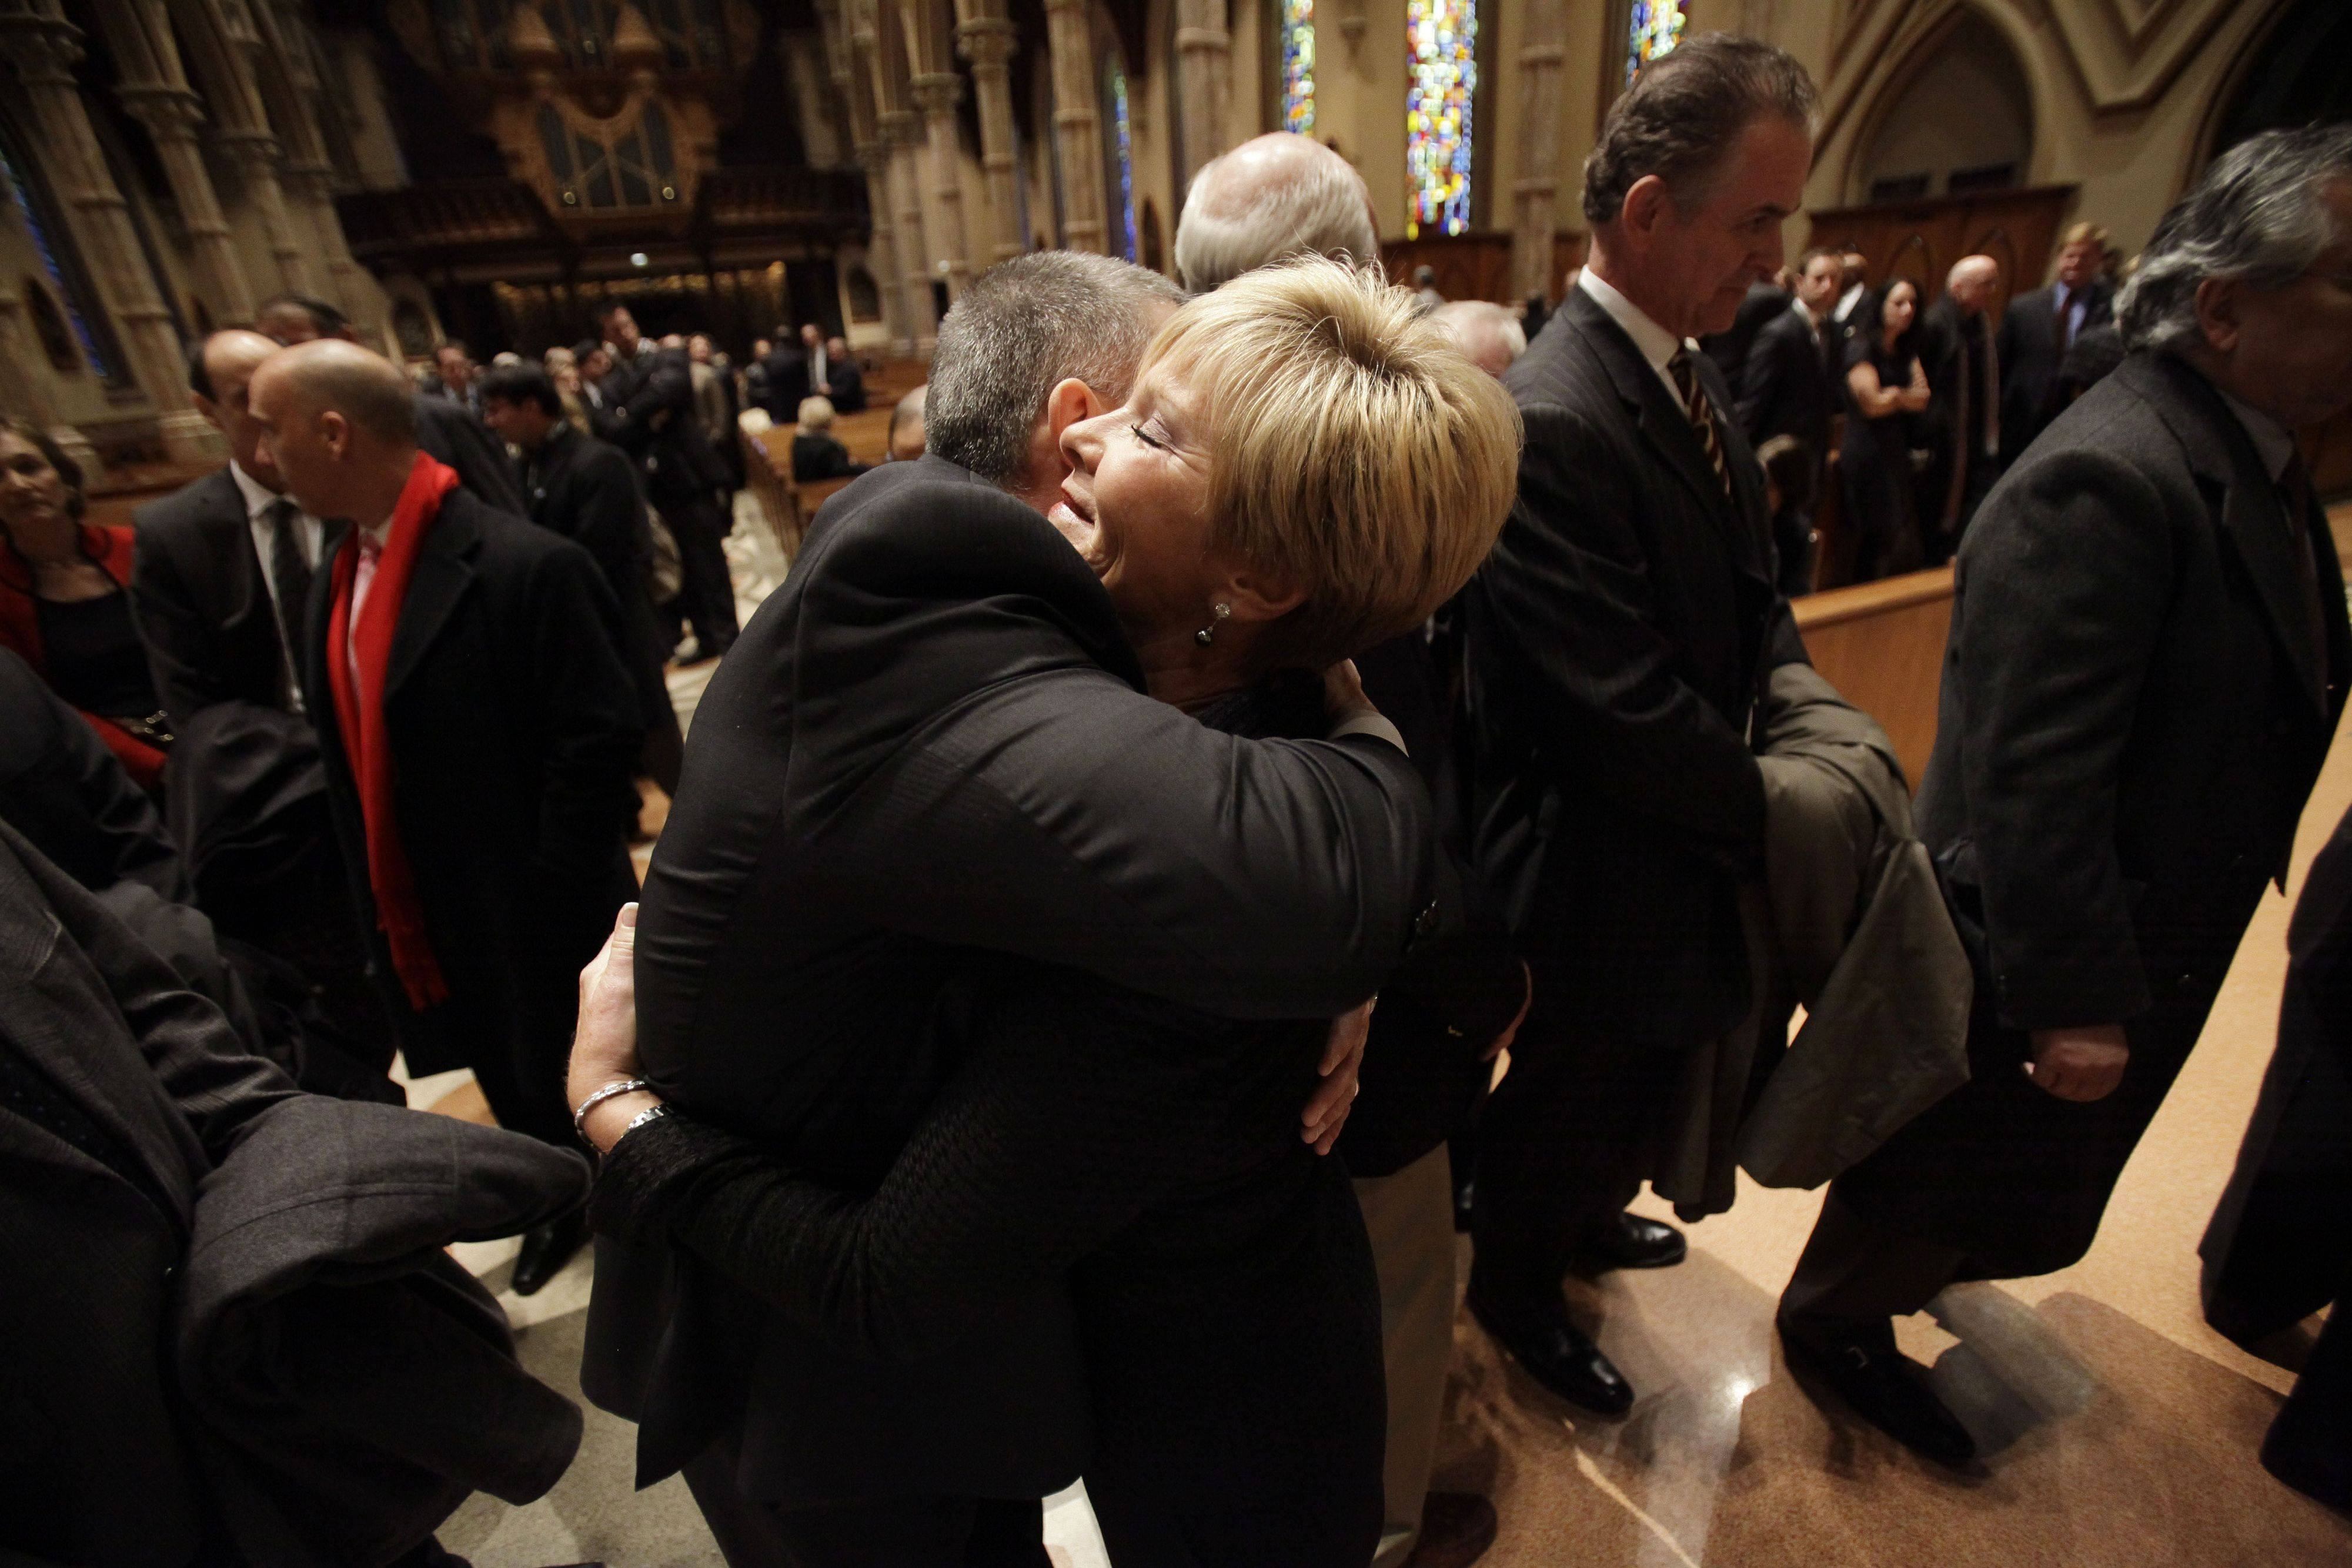 Vicki Santo, right, wife of Chicago Cubs great and longtime radio announcer Ron Santo, receives a hug from New York Yankees manager Joe Girardi during the visitation at Holy Name Cathedral, Thursday, Dec. 9, 2010, in Chicago. Ron Santo, a nine-time all-star, died Thursday, Dec. 2 in an Arizona hospital from complication of bladder cancer. He was 70. (AP Photo/Nam Y. Huh, Pool)